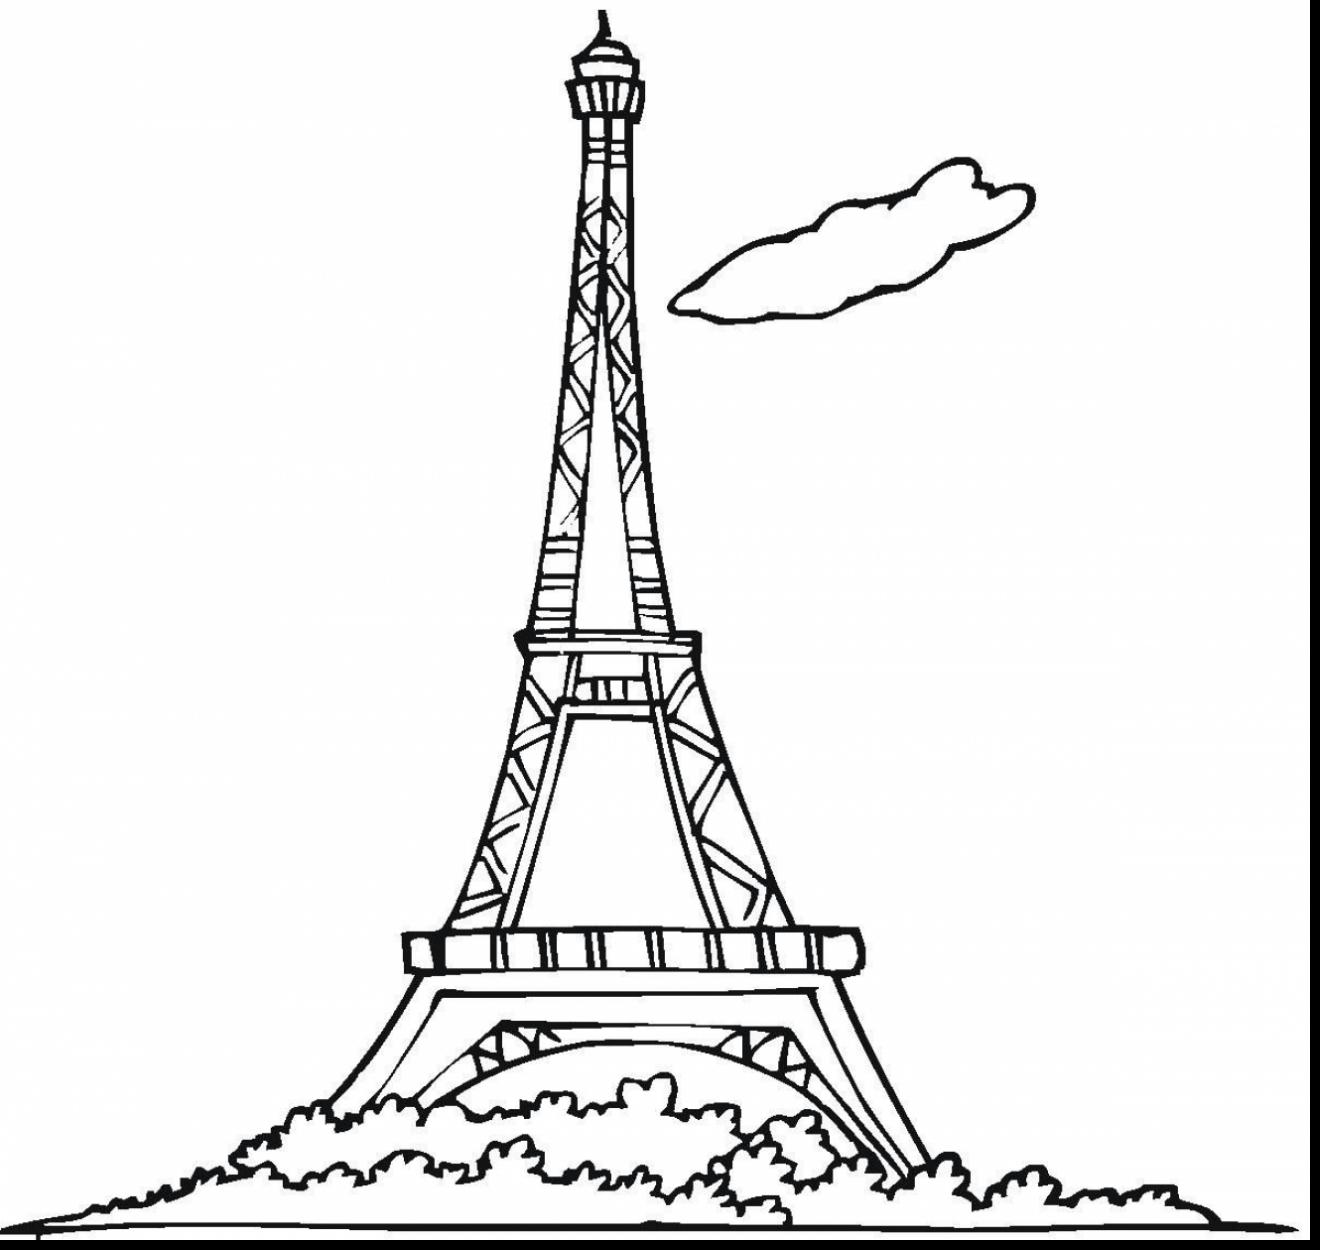 coloring pages eifell tower | Architecture Drawings | Free high quality drawings at ...